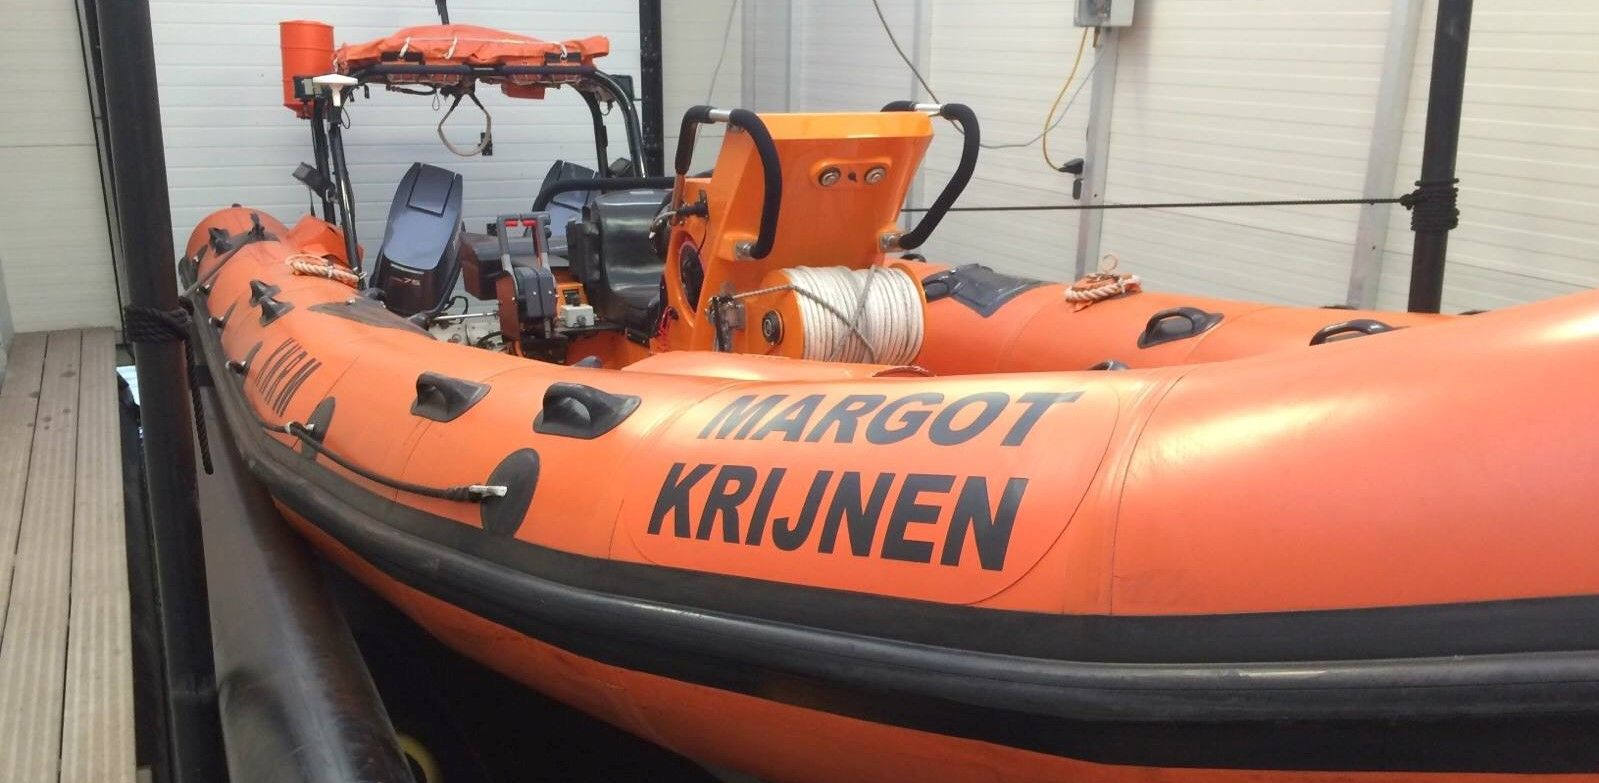 Reddingboot Margot Krijnen